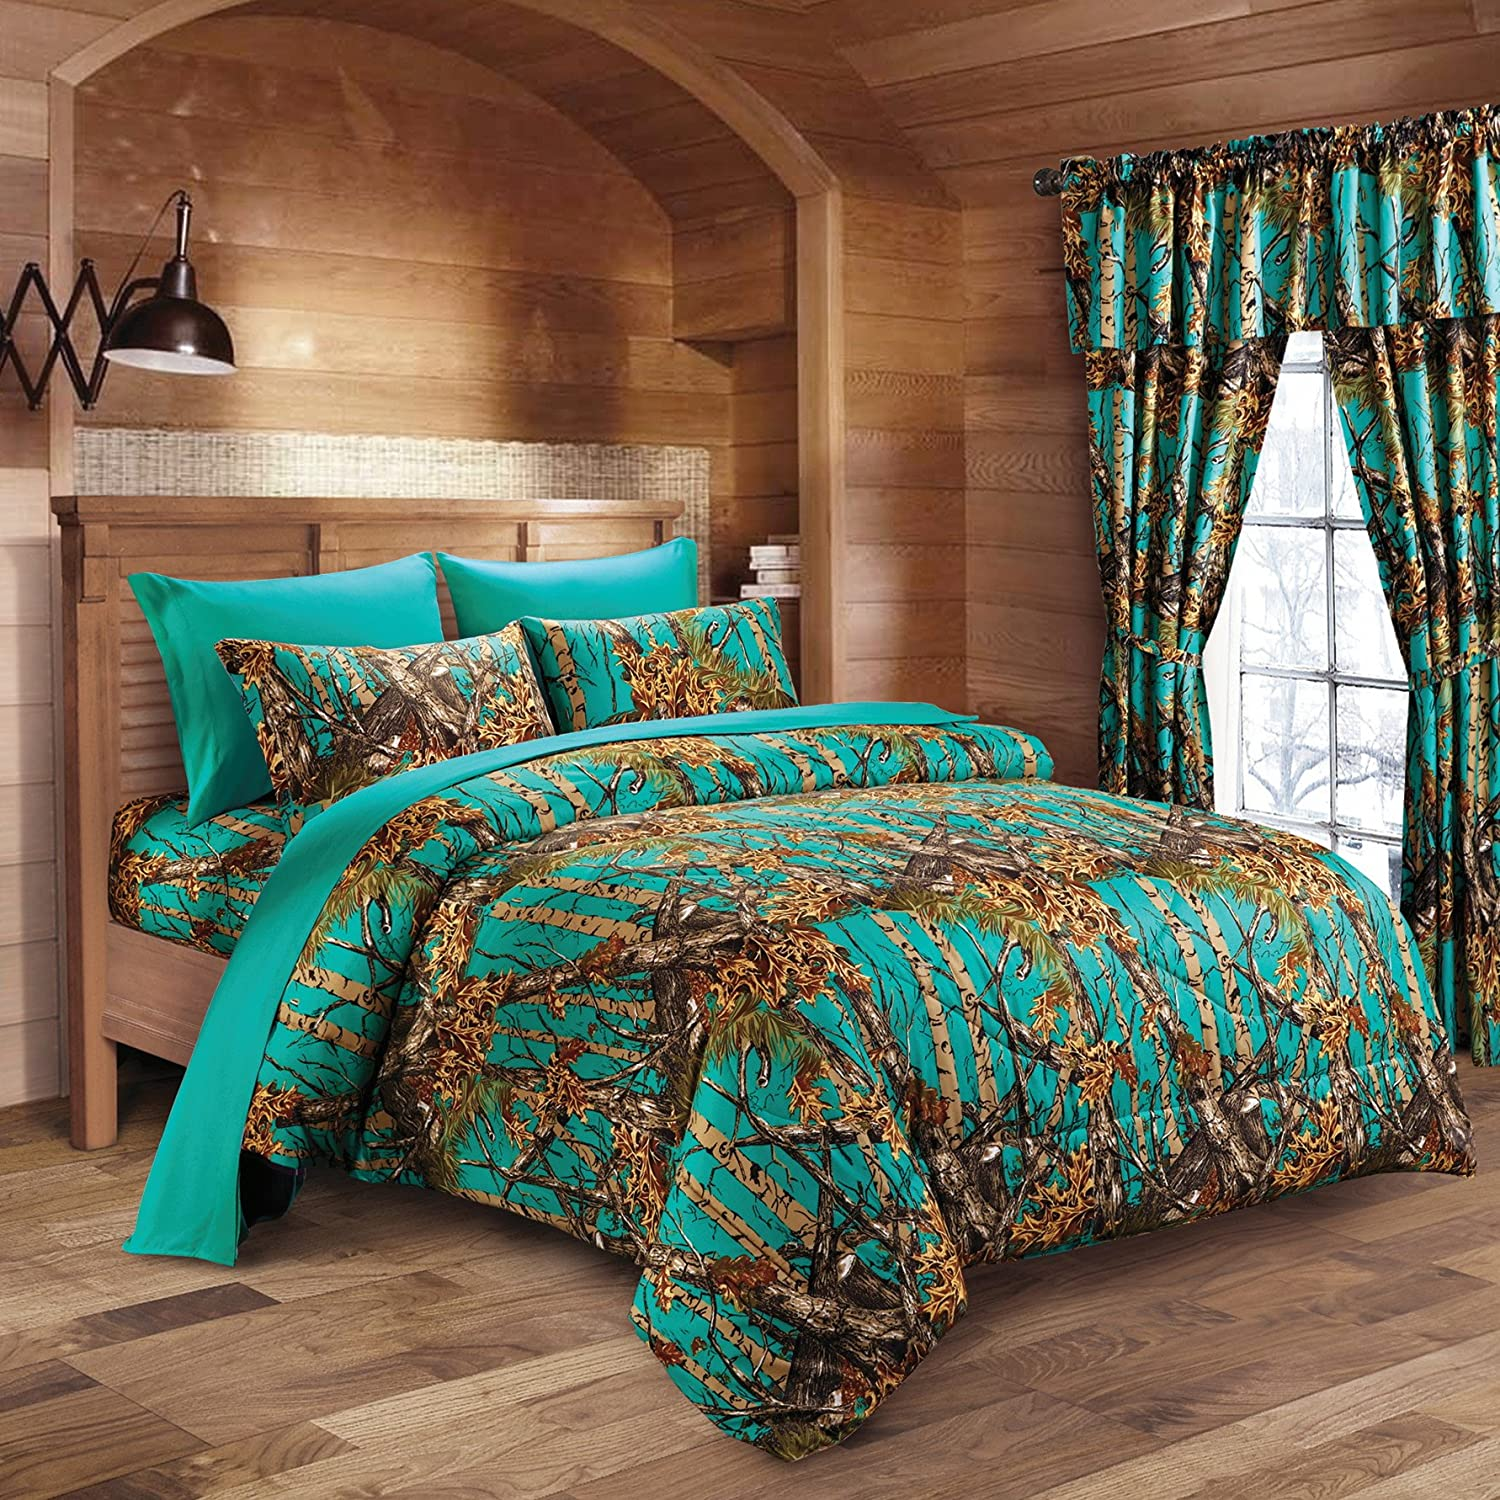 Amazon Hunter Camo forter Sheet & Pillowcase Set Queen